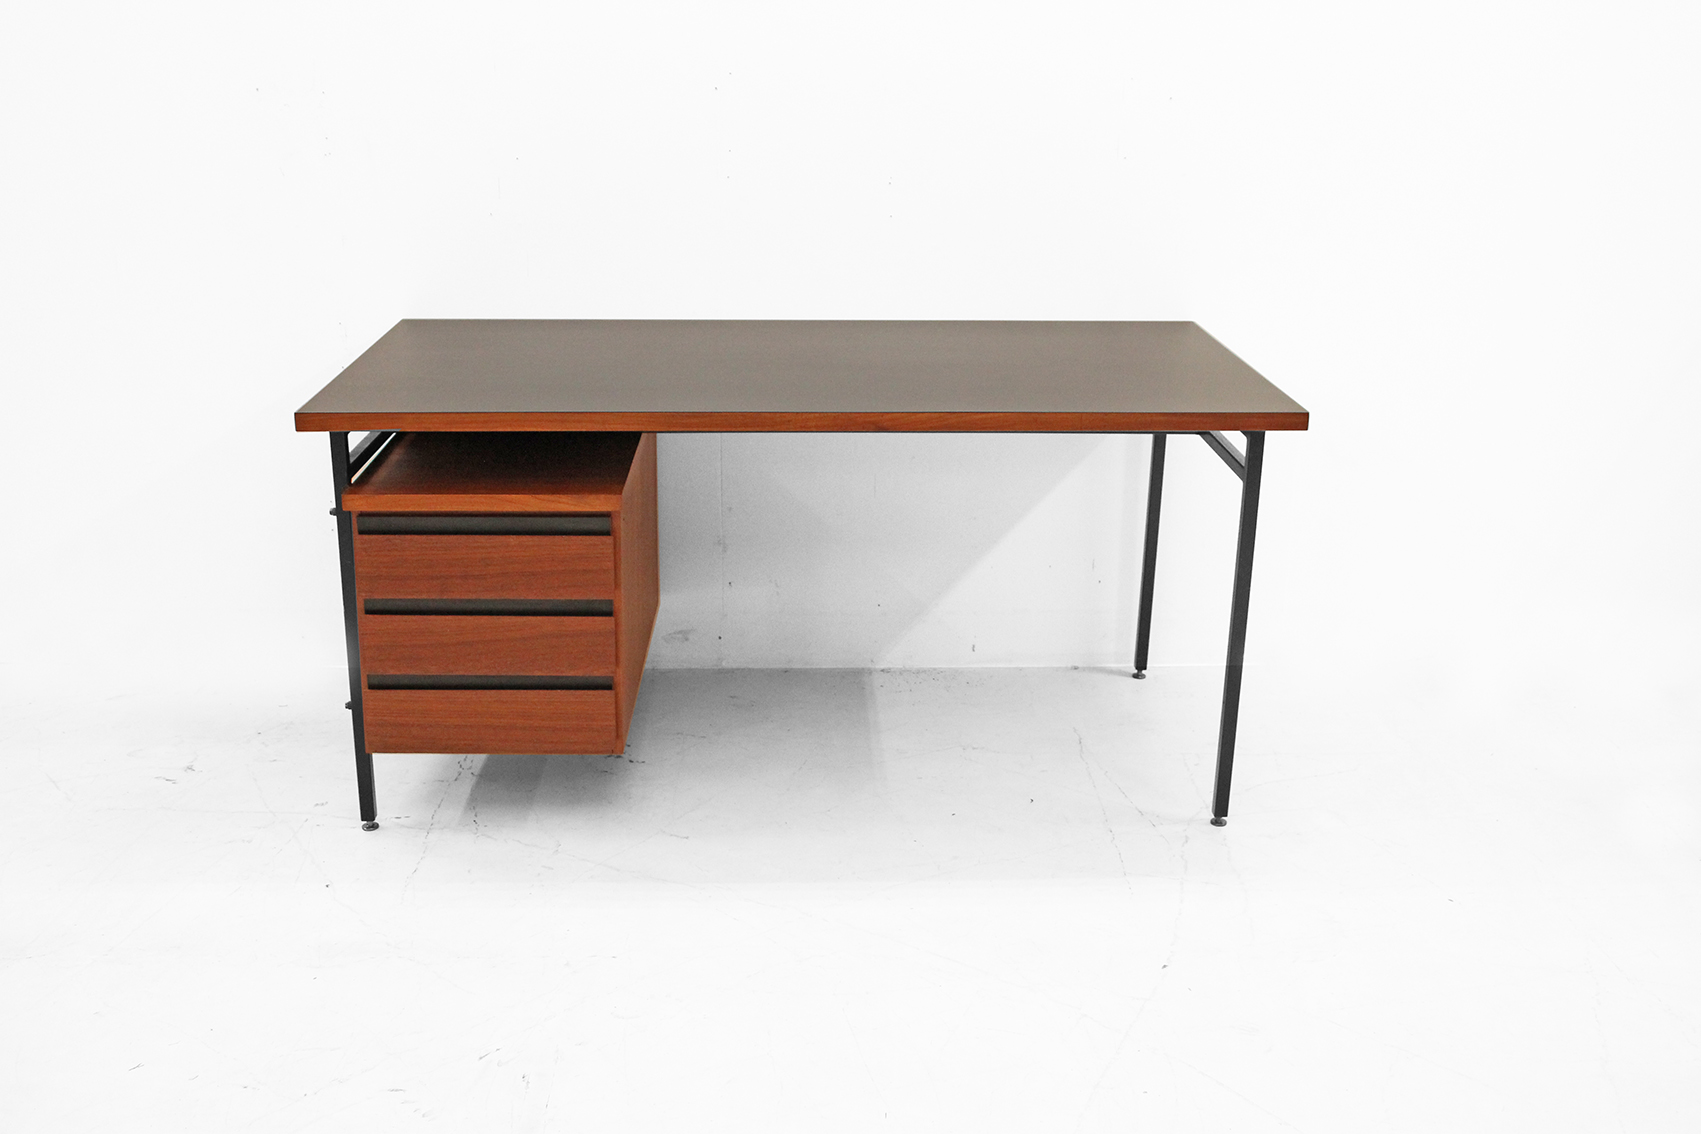 Home - office desk in dark teak